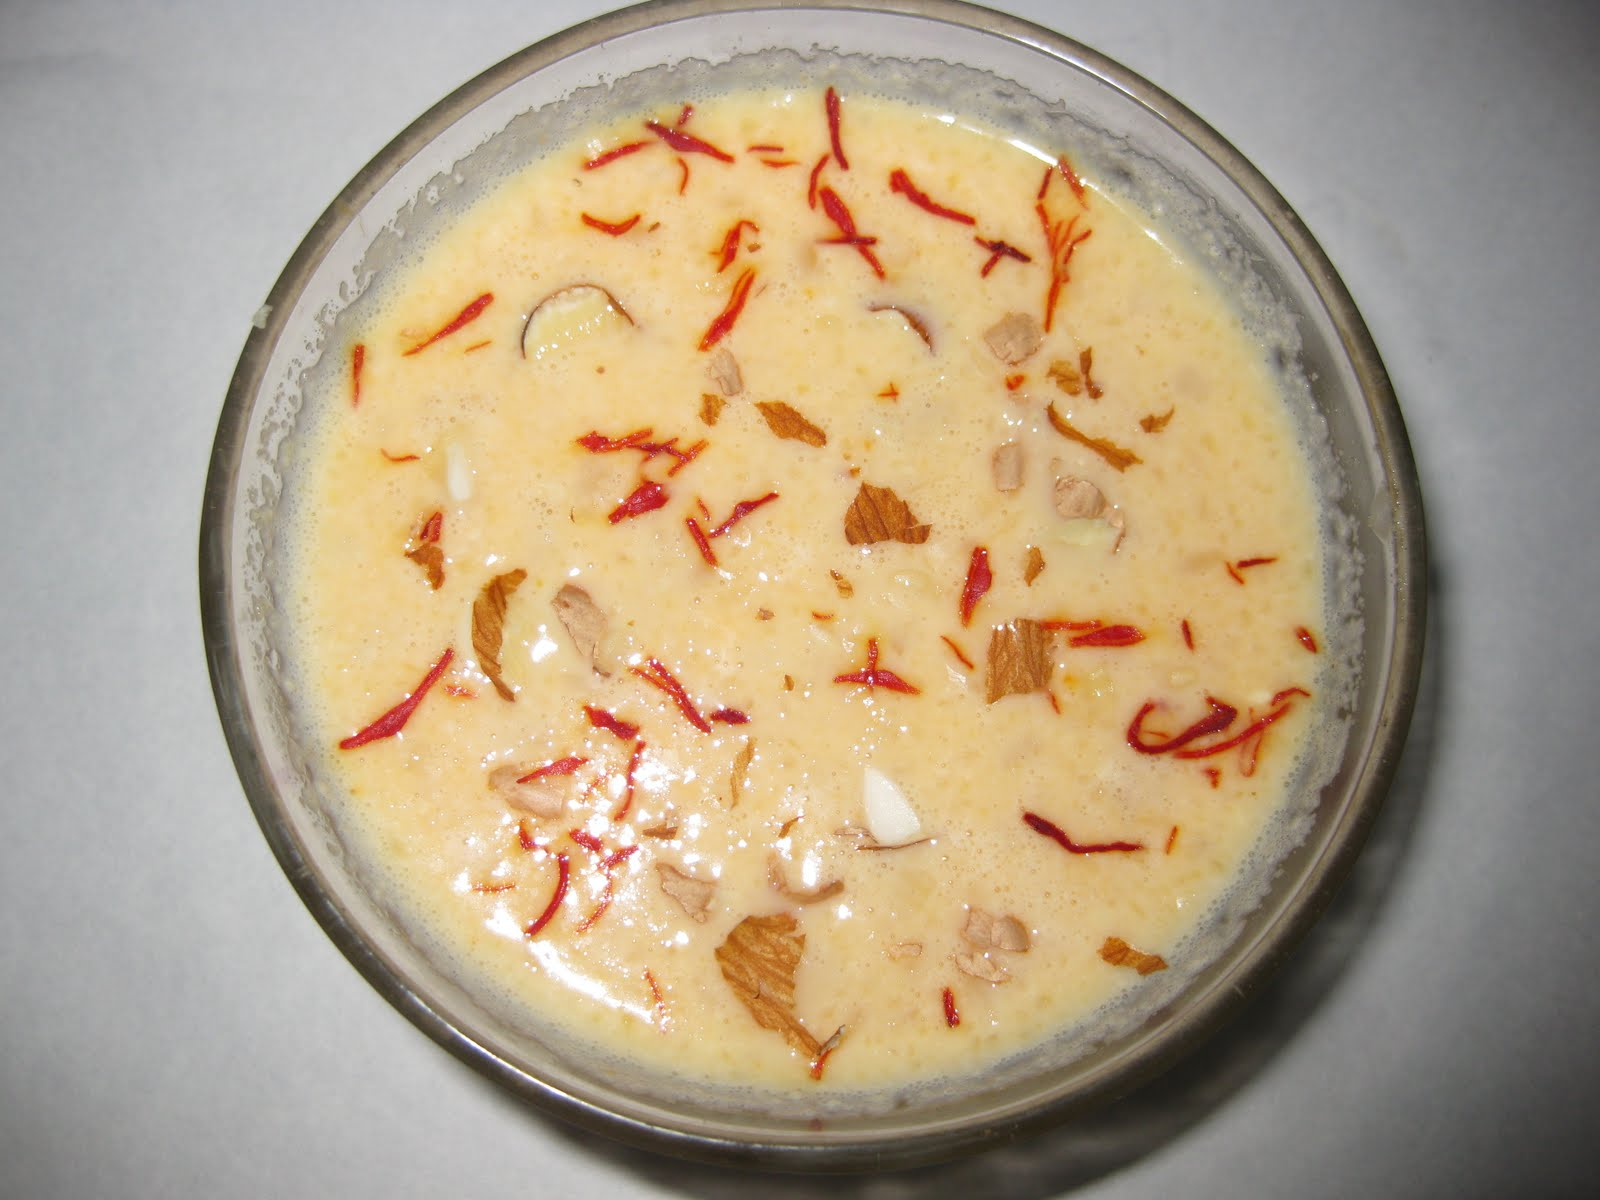 ... dry fruits. This smooth and wholesome creamy dessert is made during